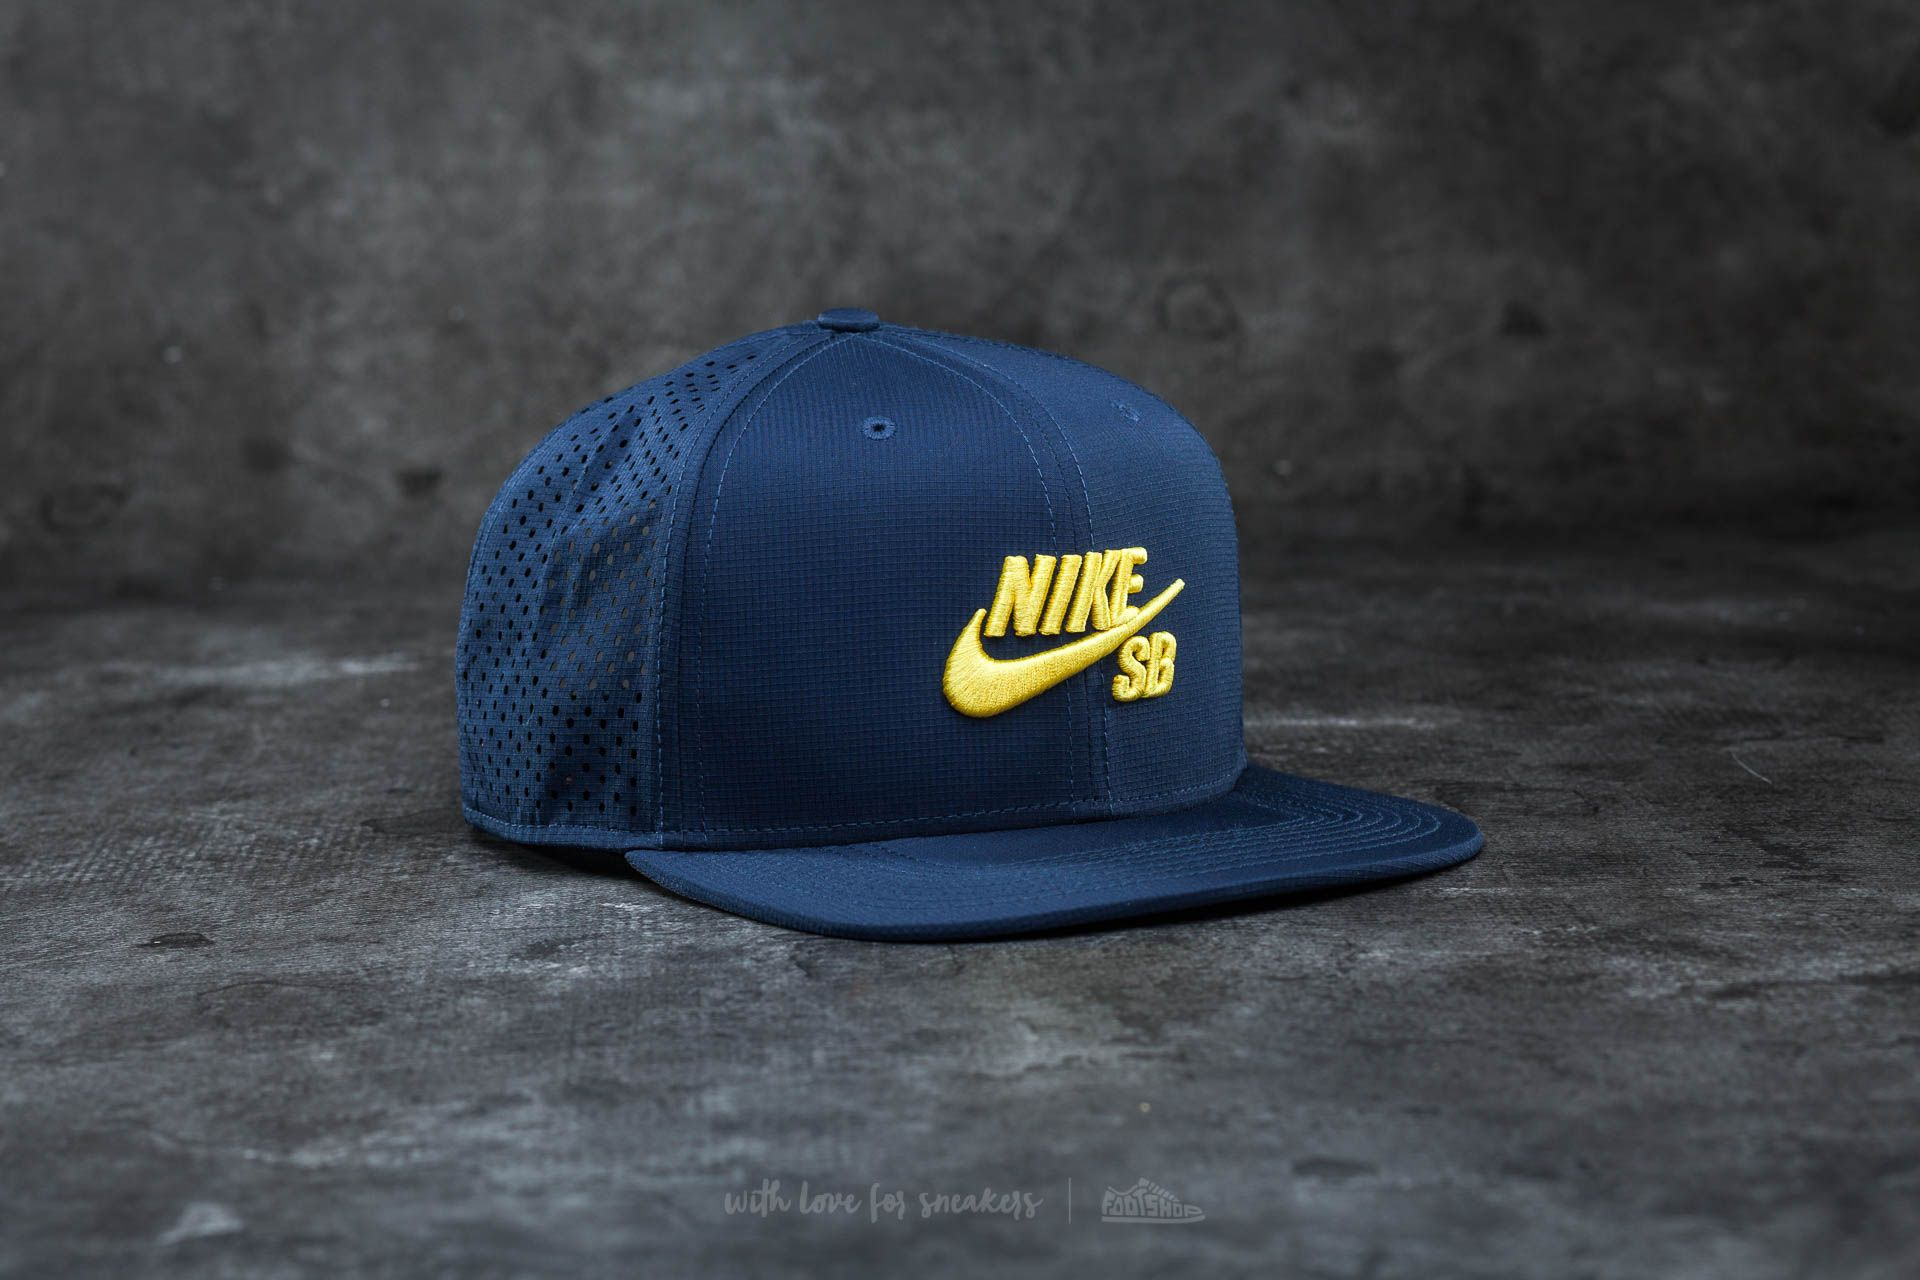 4c27dc1355 Nike SB Performance Trucker Hat Navy  Yellow